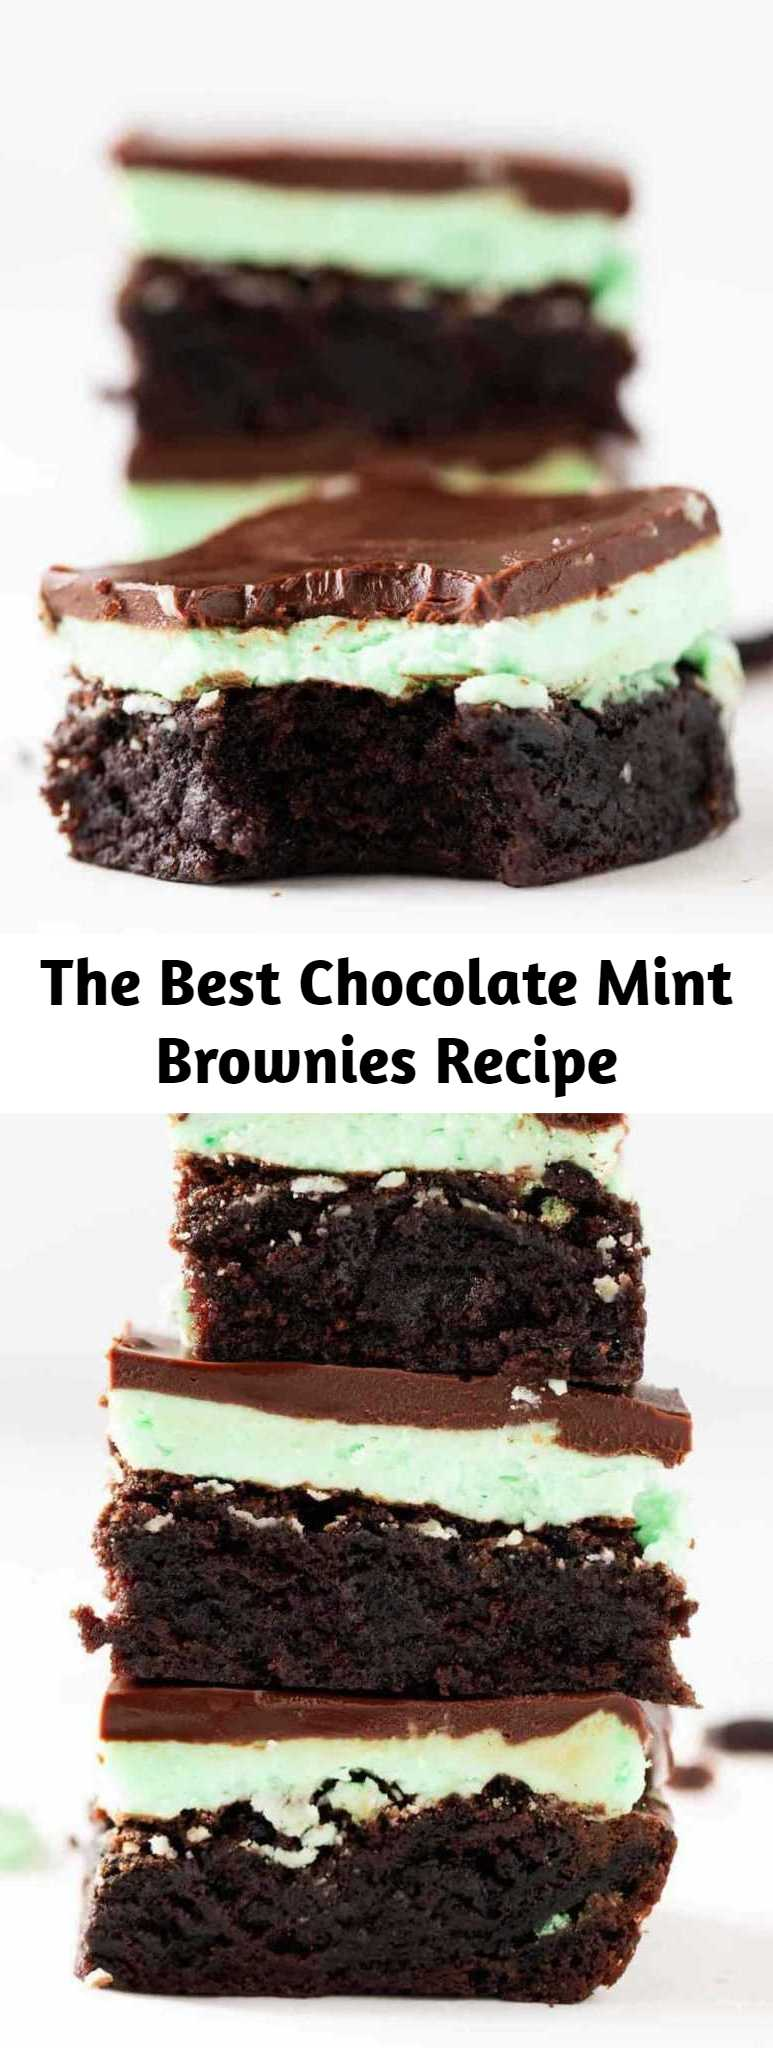 The Best Chocolate Mint Brownies Recipe - Fudgy mint brownies topped with a mint buttercream frosting and chocolate ganache. The most incredible dessert that's perfect for chocolate lovers!